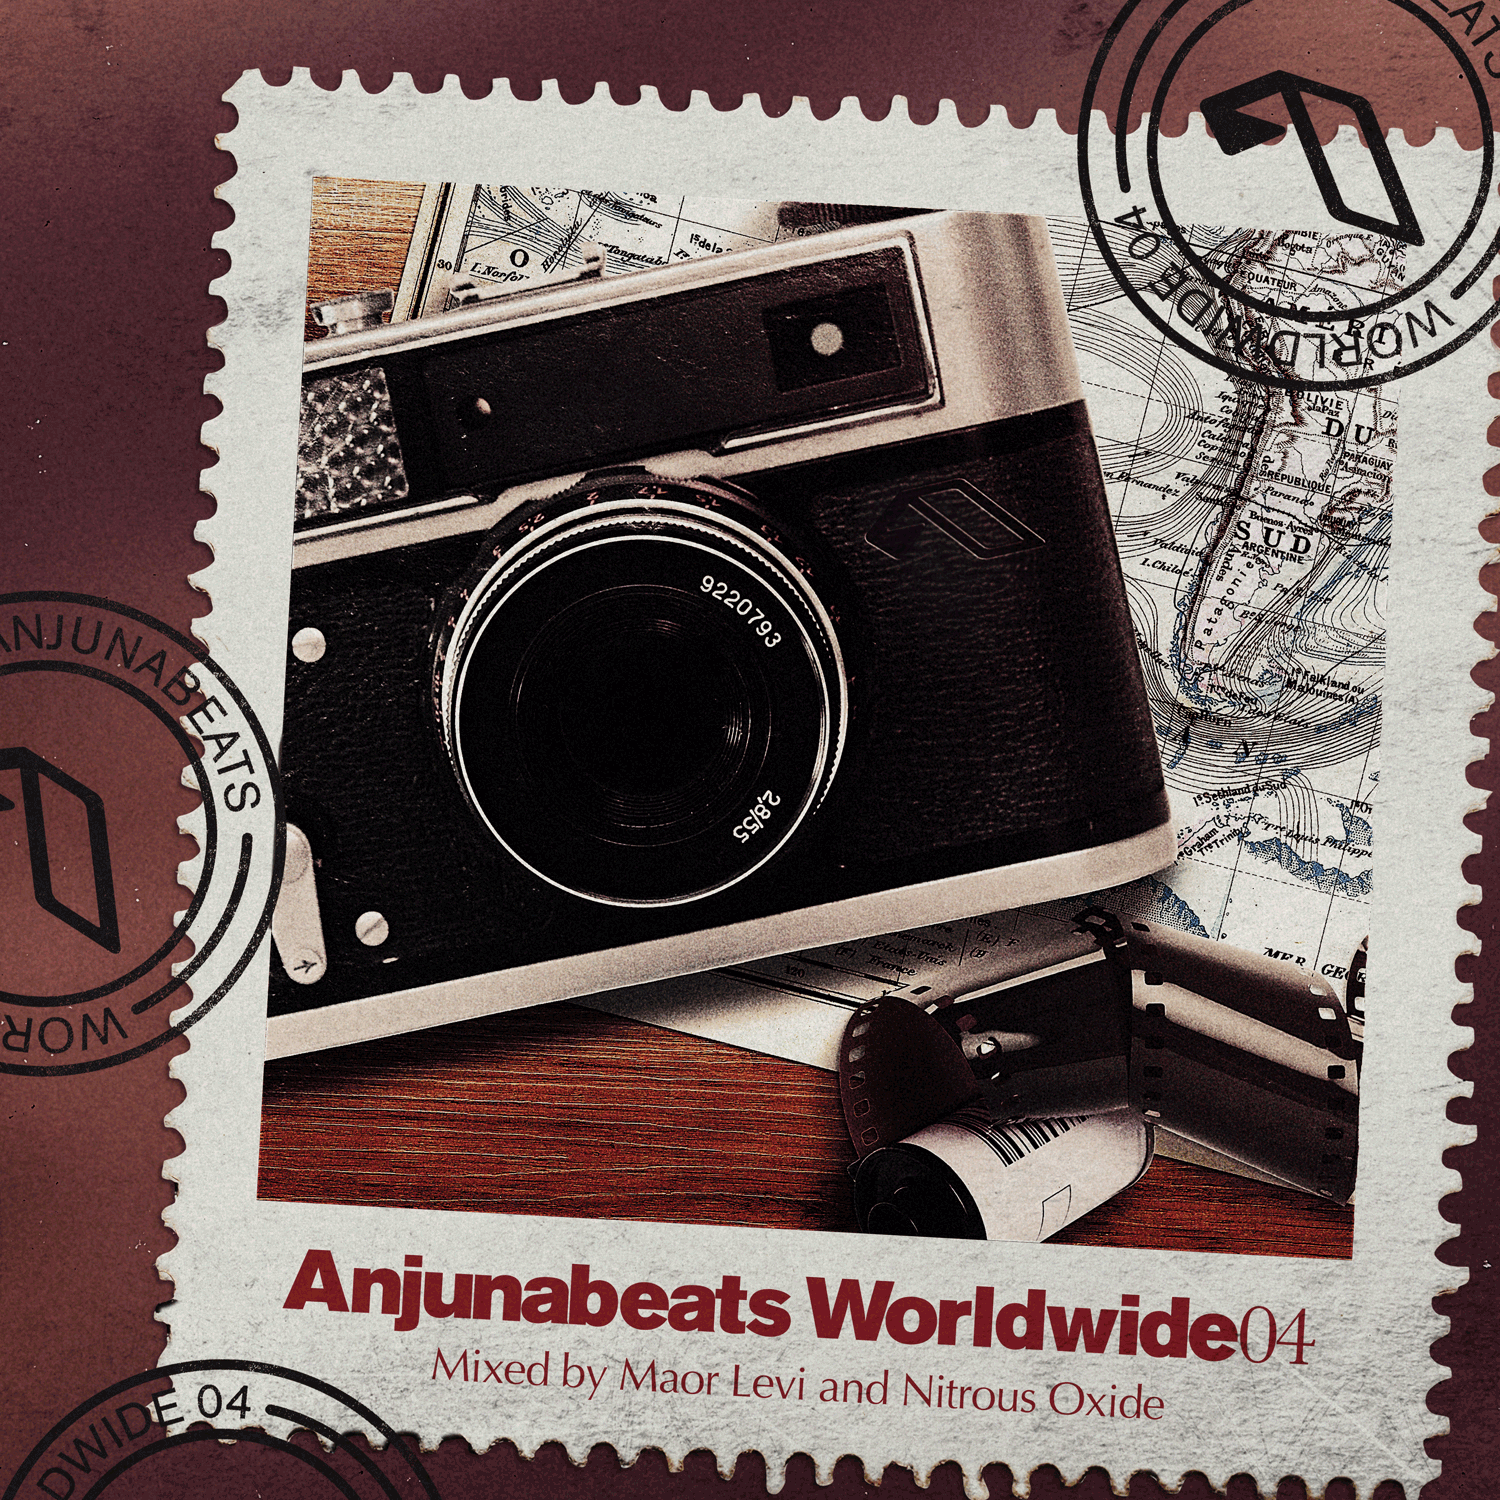 Anjunabeats Worldwide 04 mixed by Maor Levi and Nitrous Oxide Artworks-000020368709-ps8a76-original